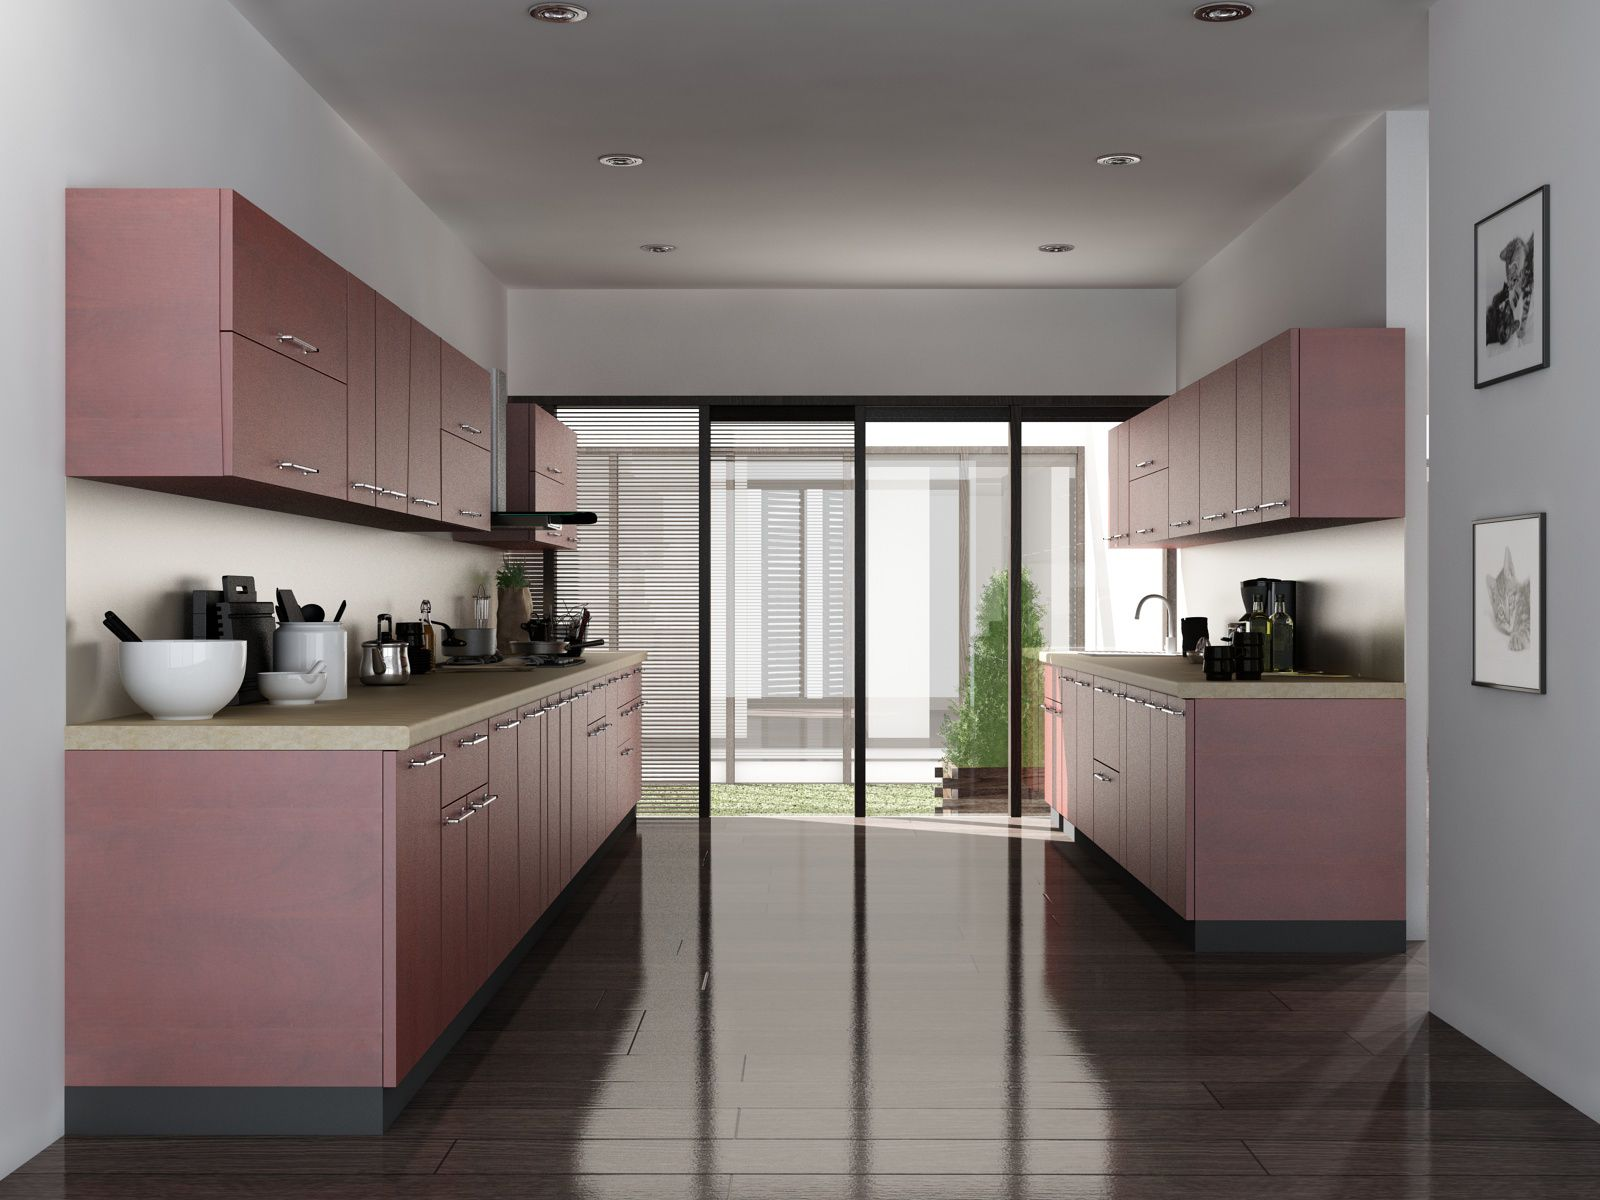 parallel shaped modular kitchen parallel shaped modular kitchen get modular kitchen prices instantly online using our free online modular kitchen price calculator now get complimentary interior designing services on